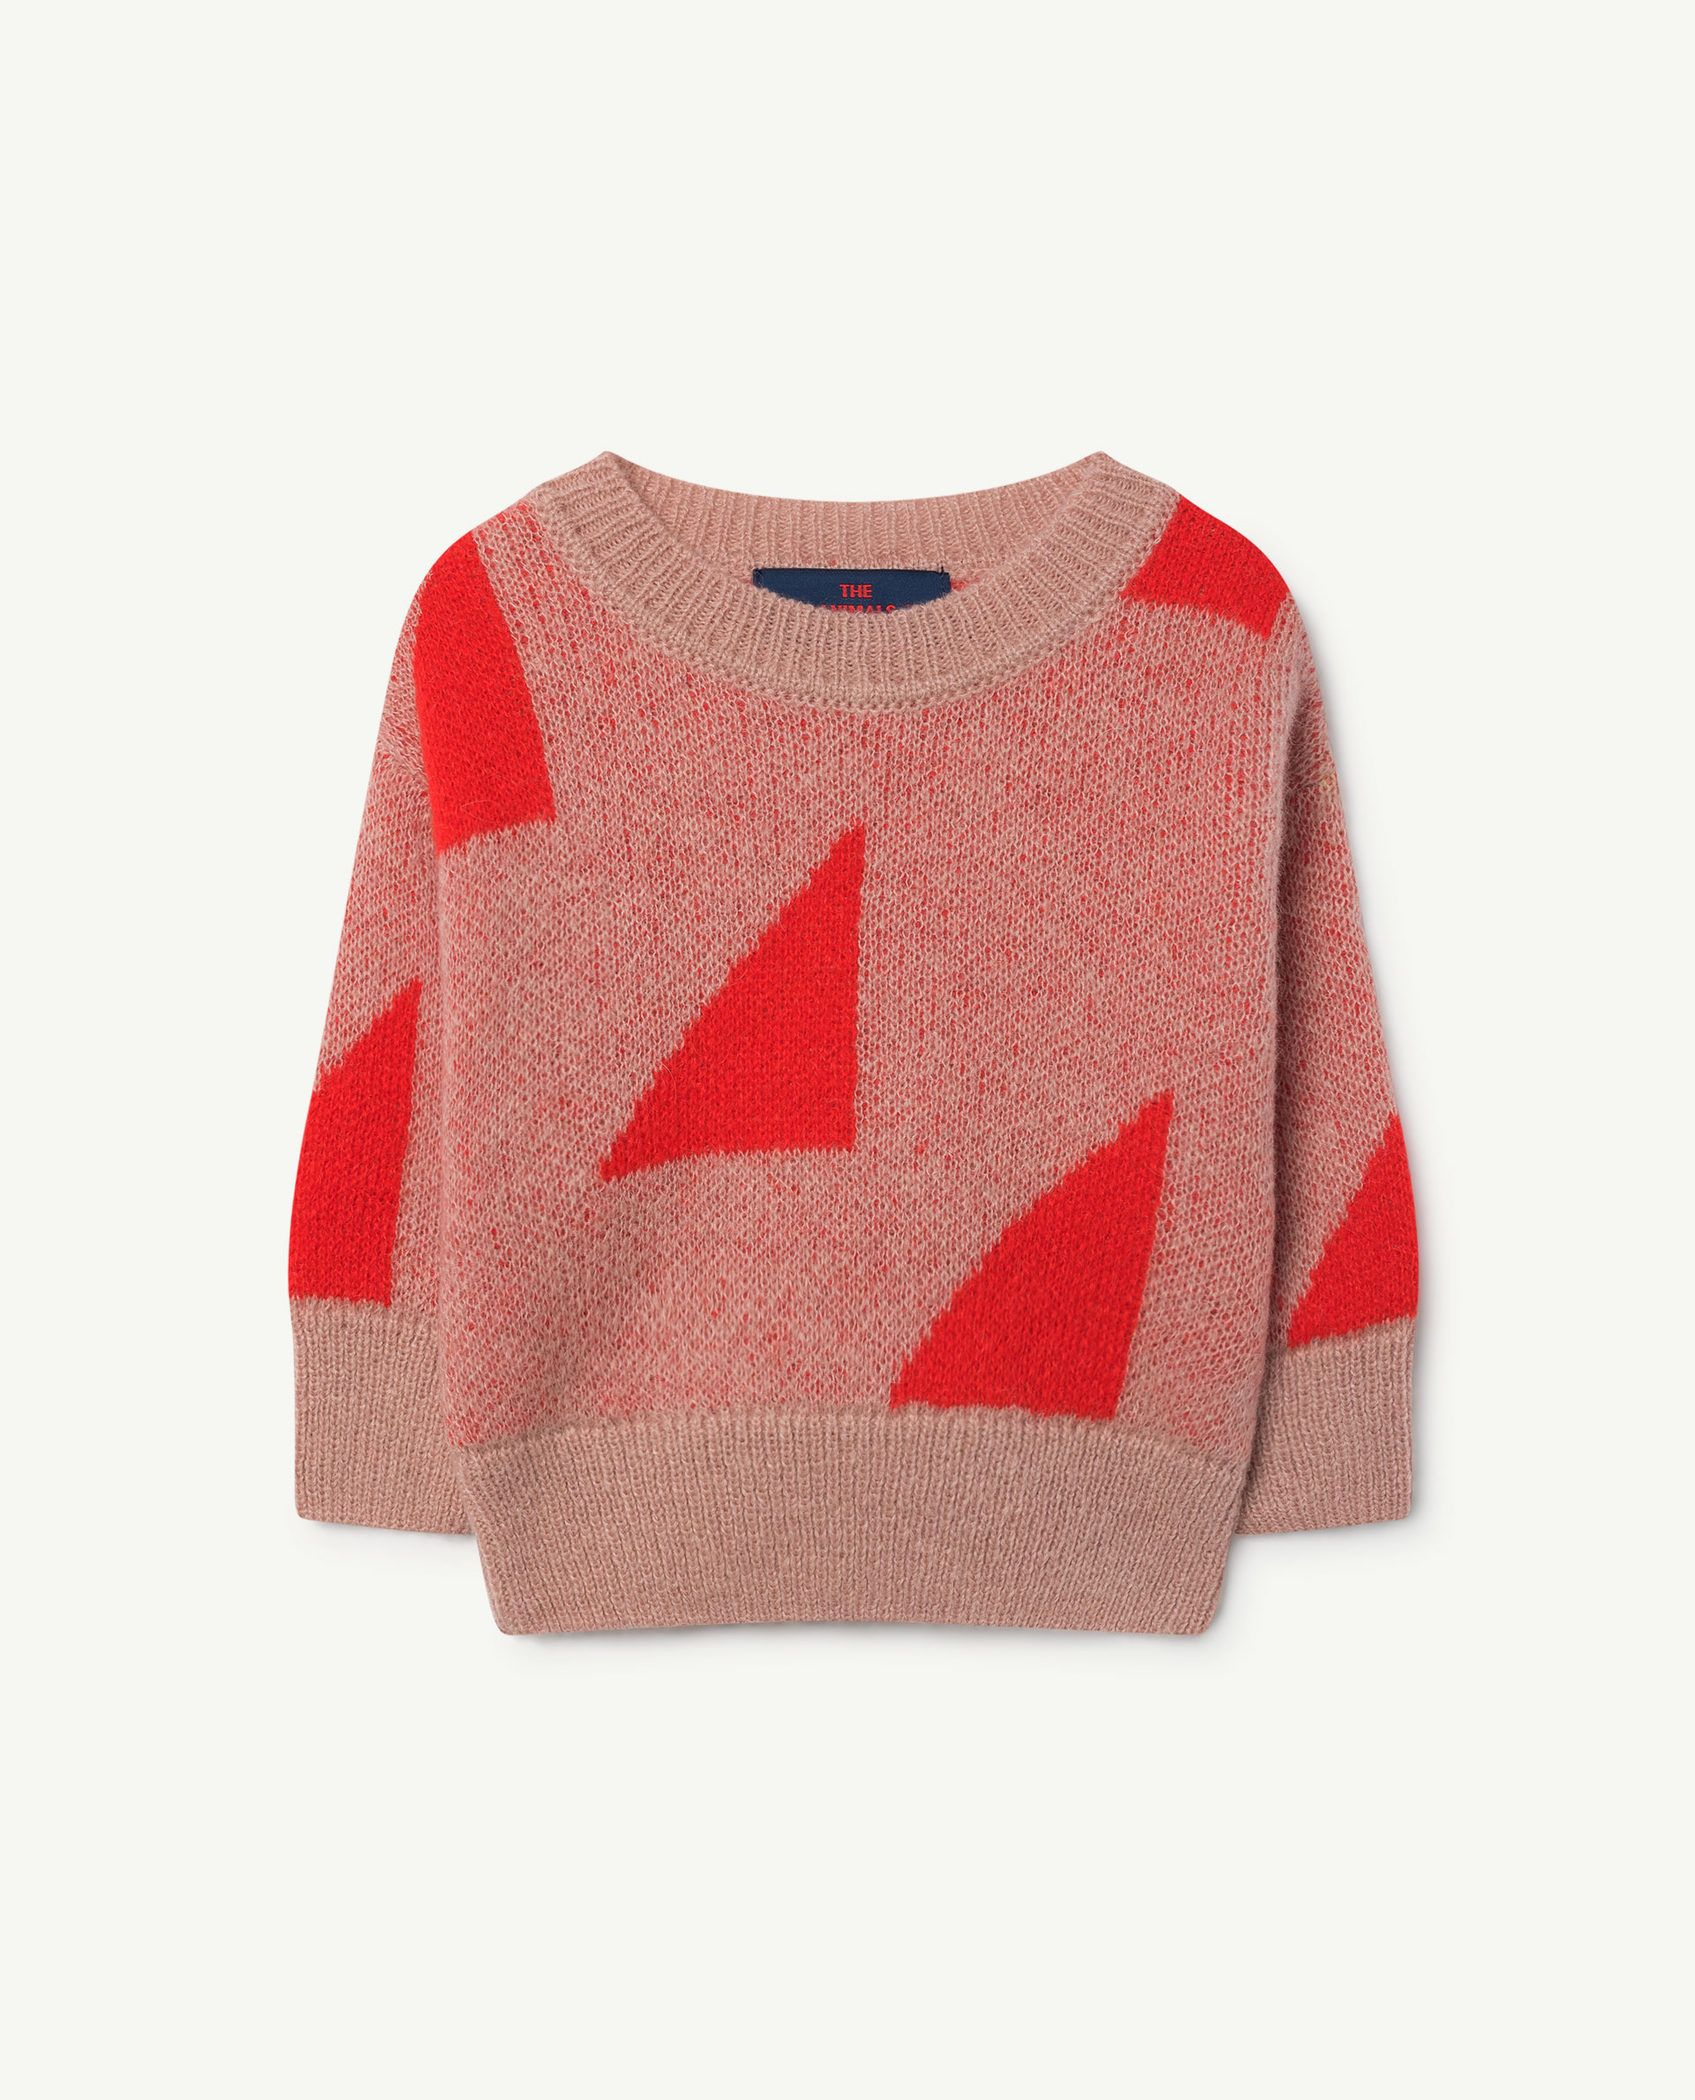 Red Geometric Bull Sweater img-1